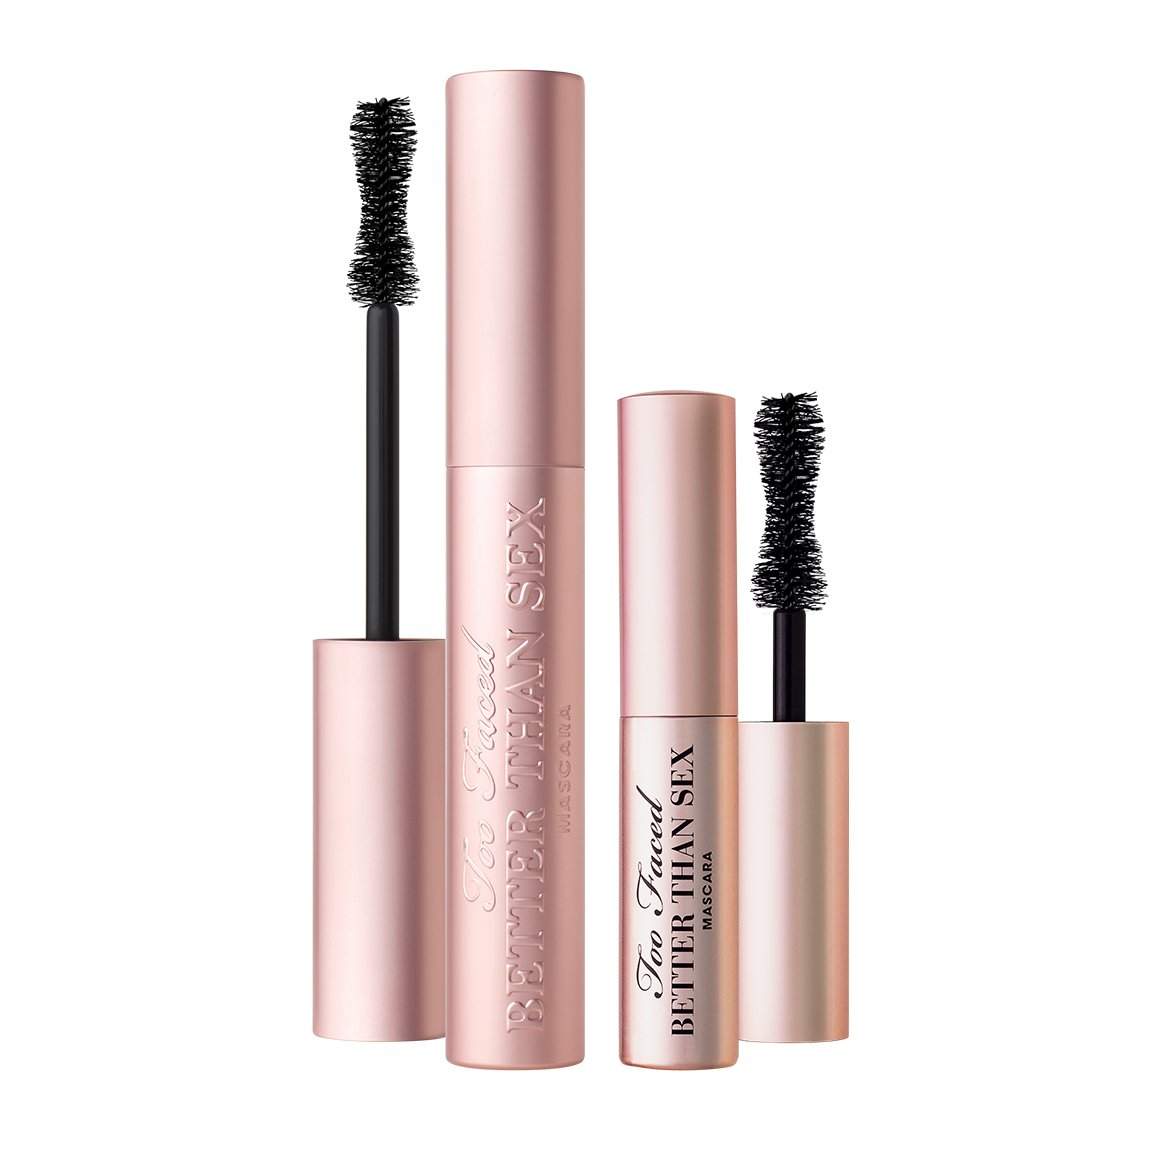 Too Faced Better Than Sex Mascara Duo Set (Full Size and Travel Sized)